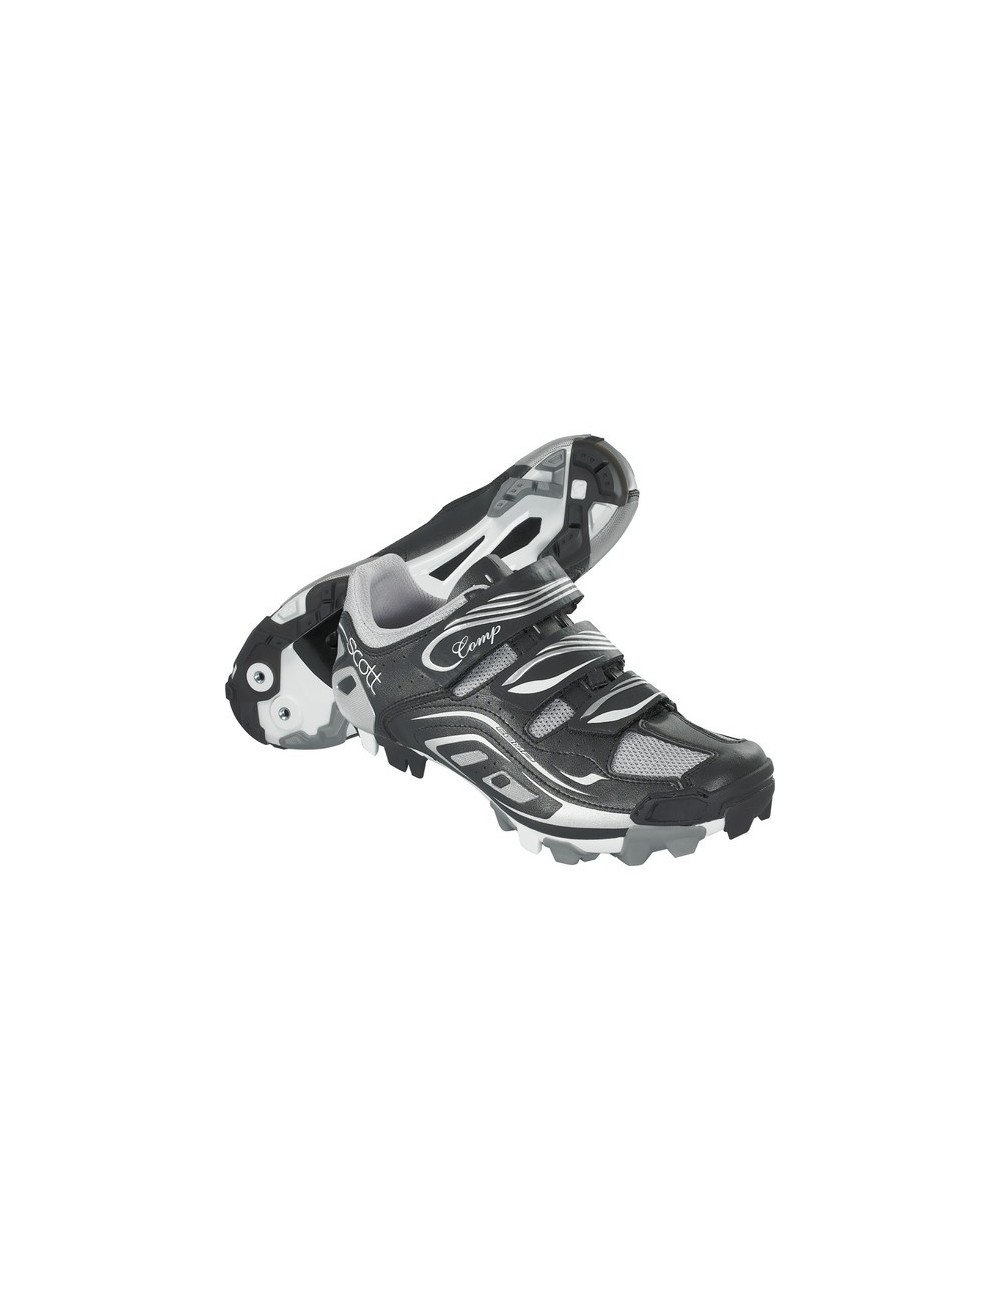 SAPATOS SCOTT MTB COMP LADY PRETO T-36